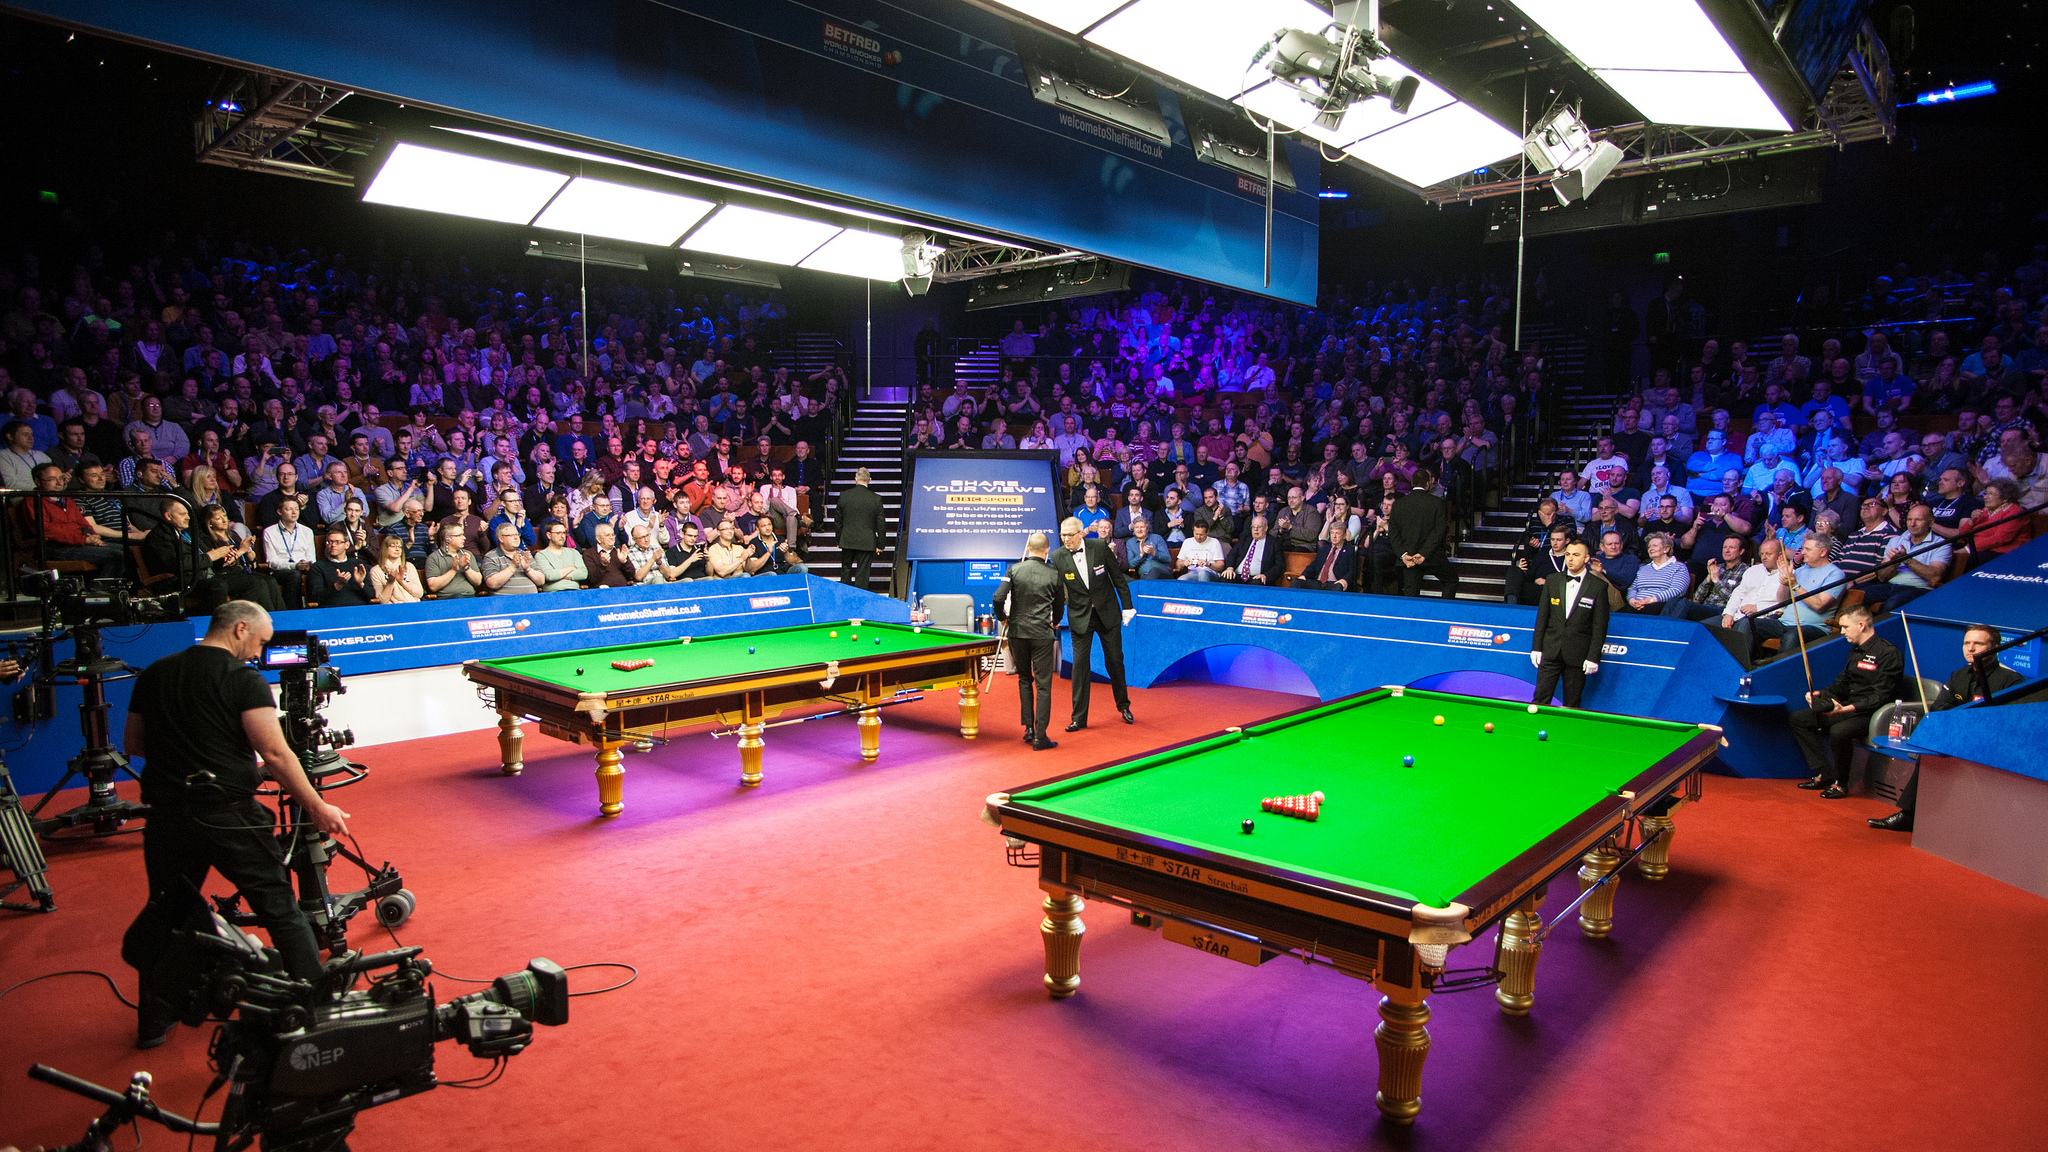 Betfred World Snooker Championship Tickets For 2020 – On Sale May 5th & 6th 2019